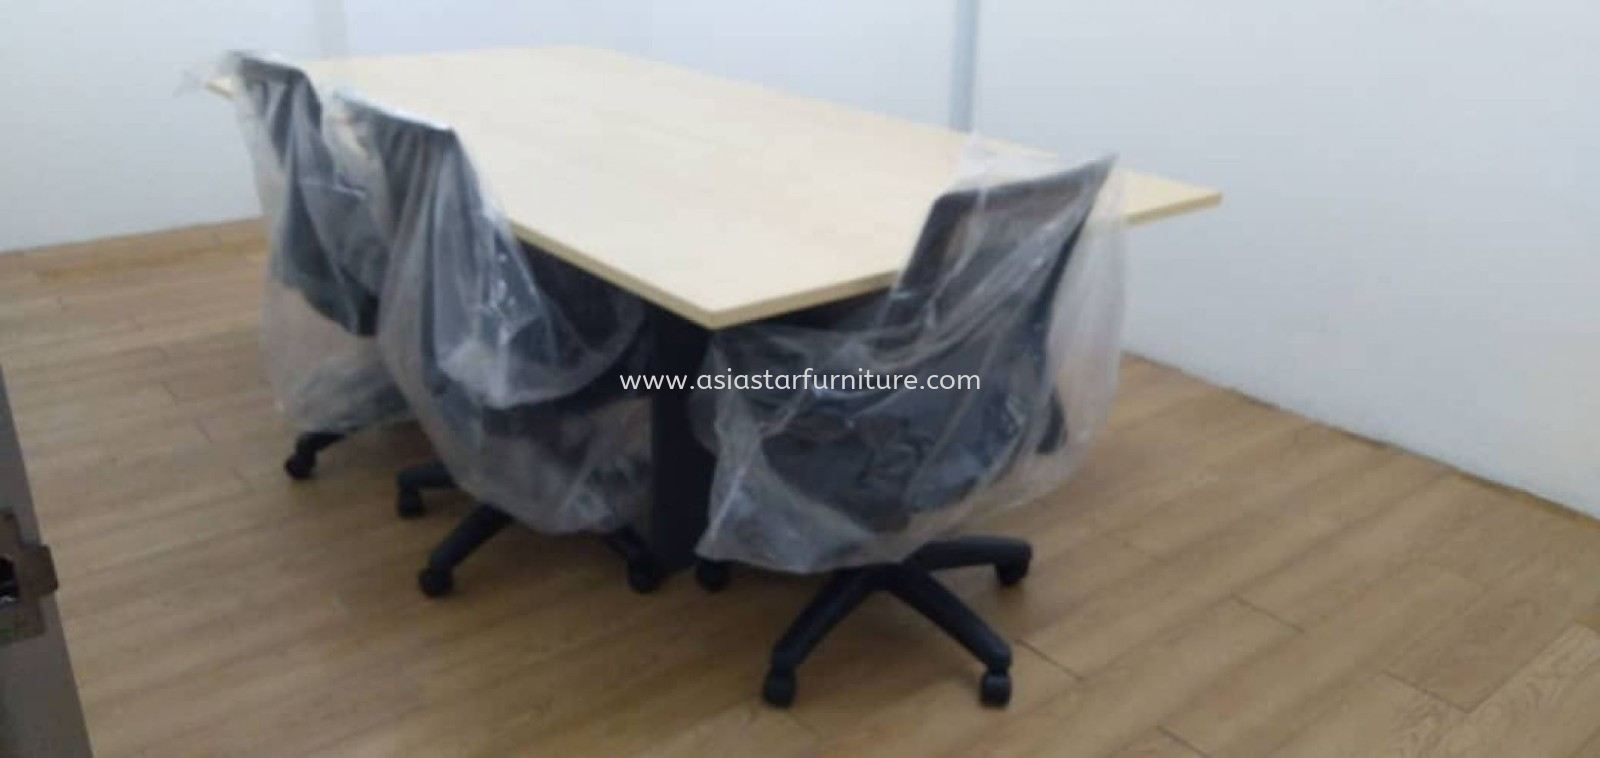 DELIVERY & INSTALLATION RECTANGULAR OFFICE MEETING TABLE TOE 18 & EDEX LOW MESH CHAIRS OFFICE FURNITURE SUNWAY PJ 51A, PETALING JAYA